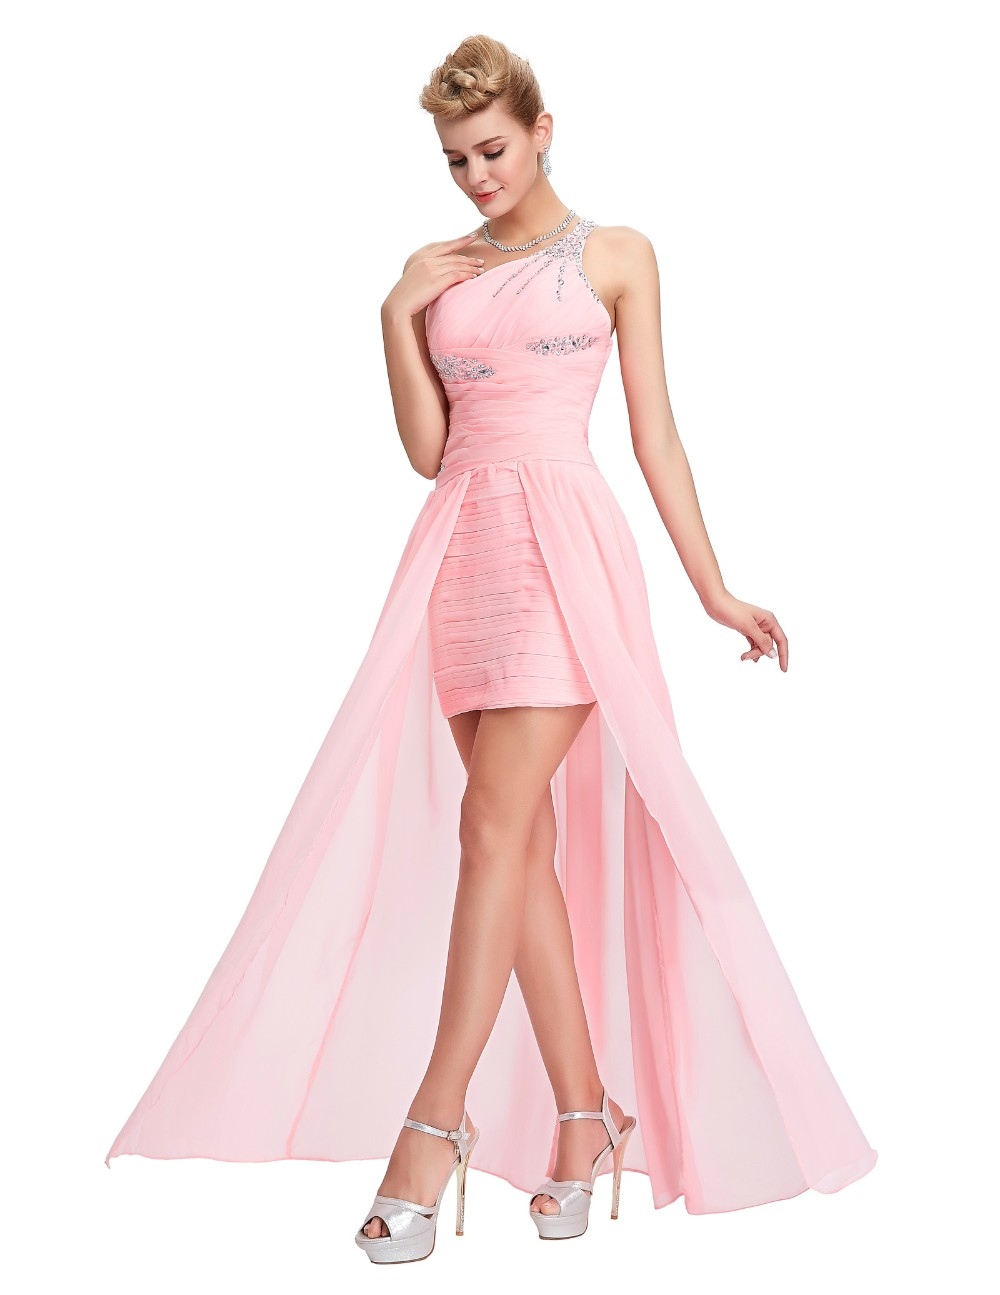 Light Pink Bridesmaid Dresses Grace Karin Beaded Chiffon One Shoulder Formal Gowns Short Front Long Back Wedding Party Dresses 11